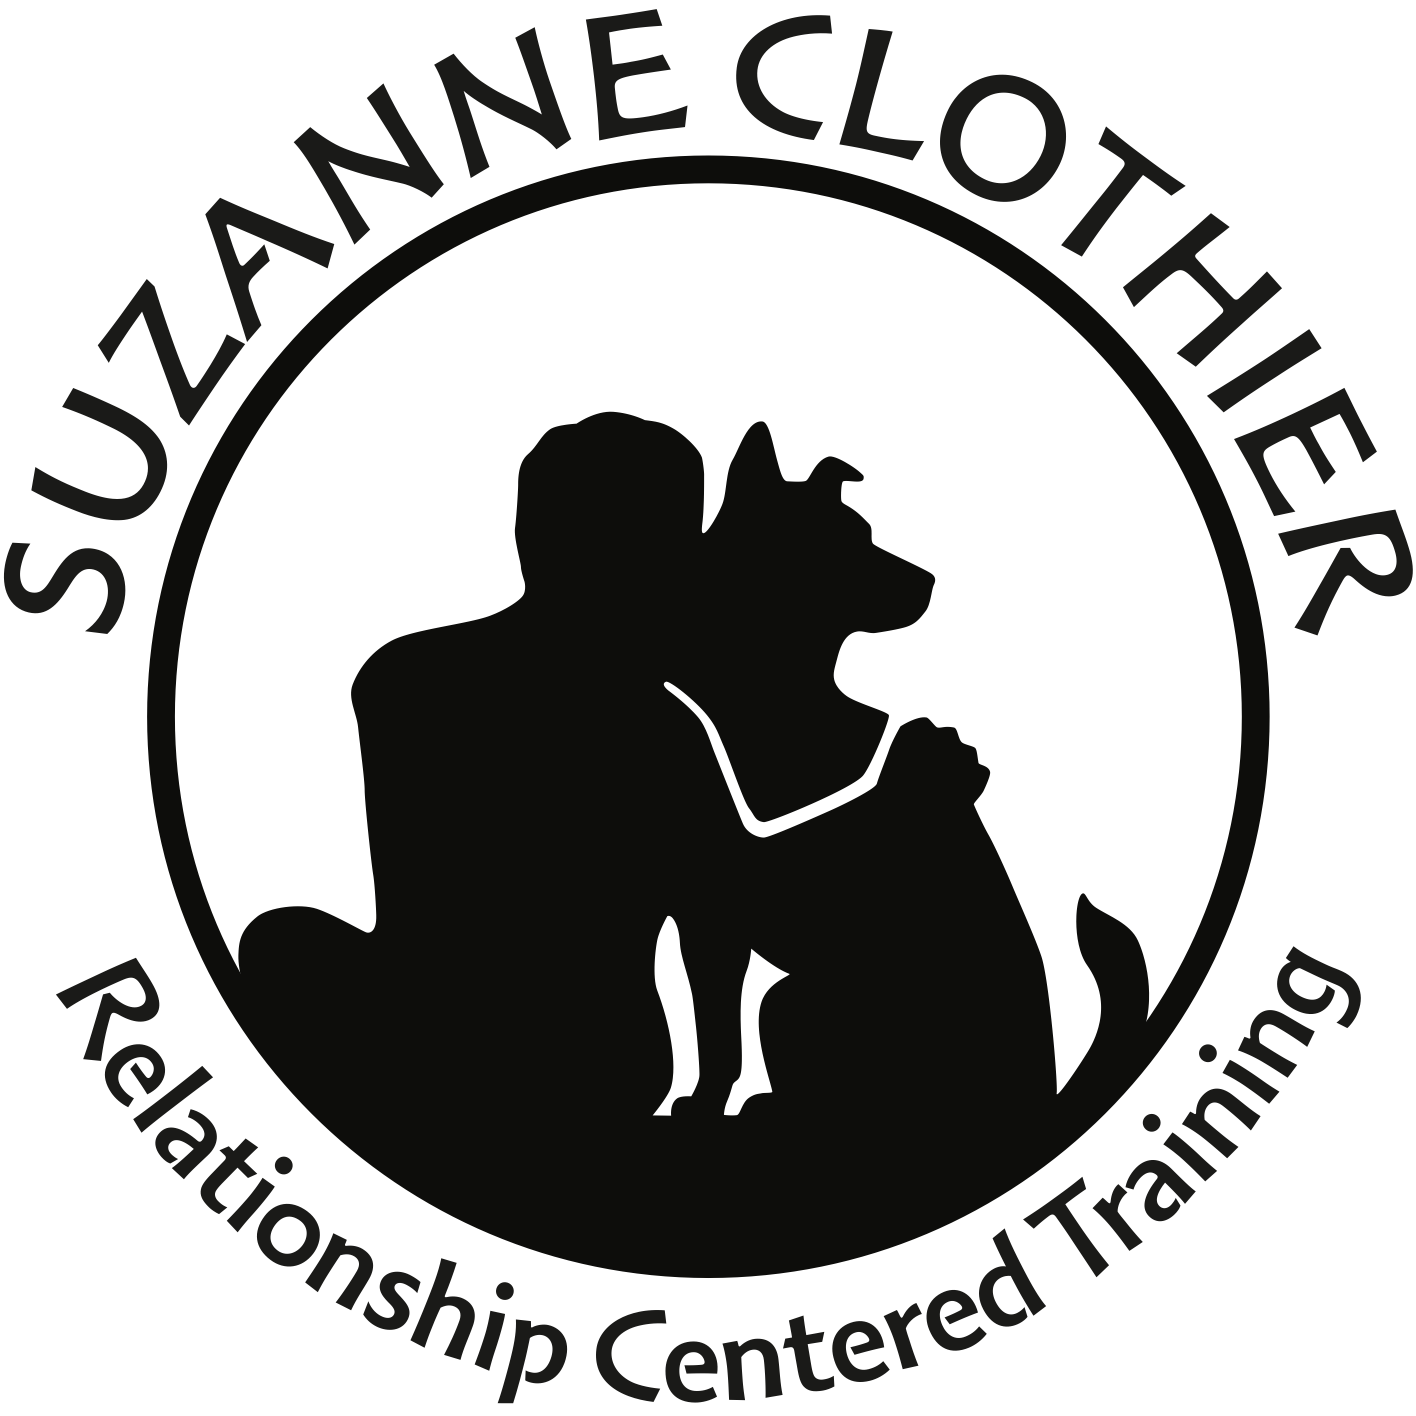 Suzannes Logo.png